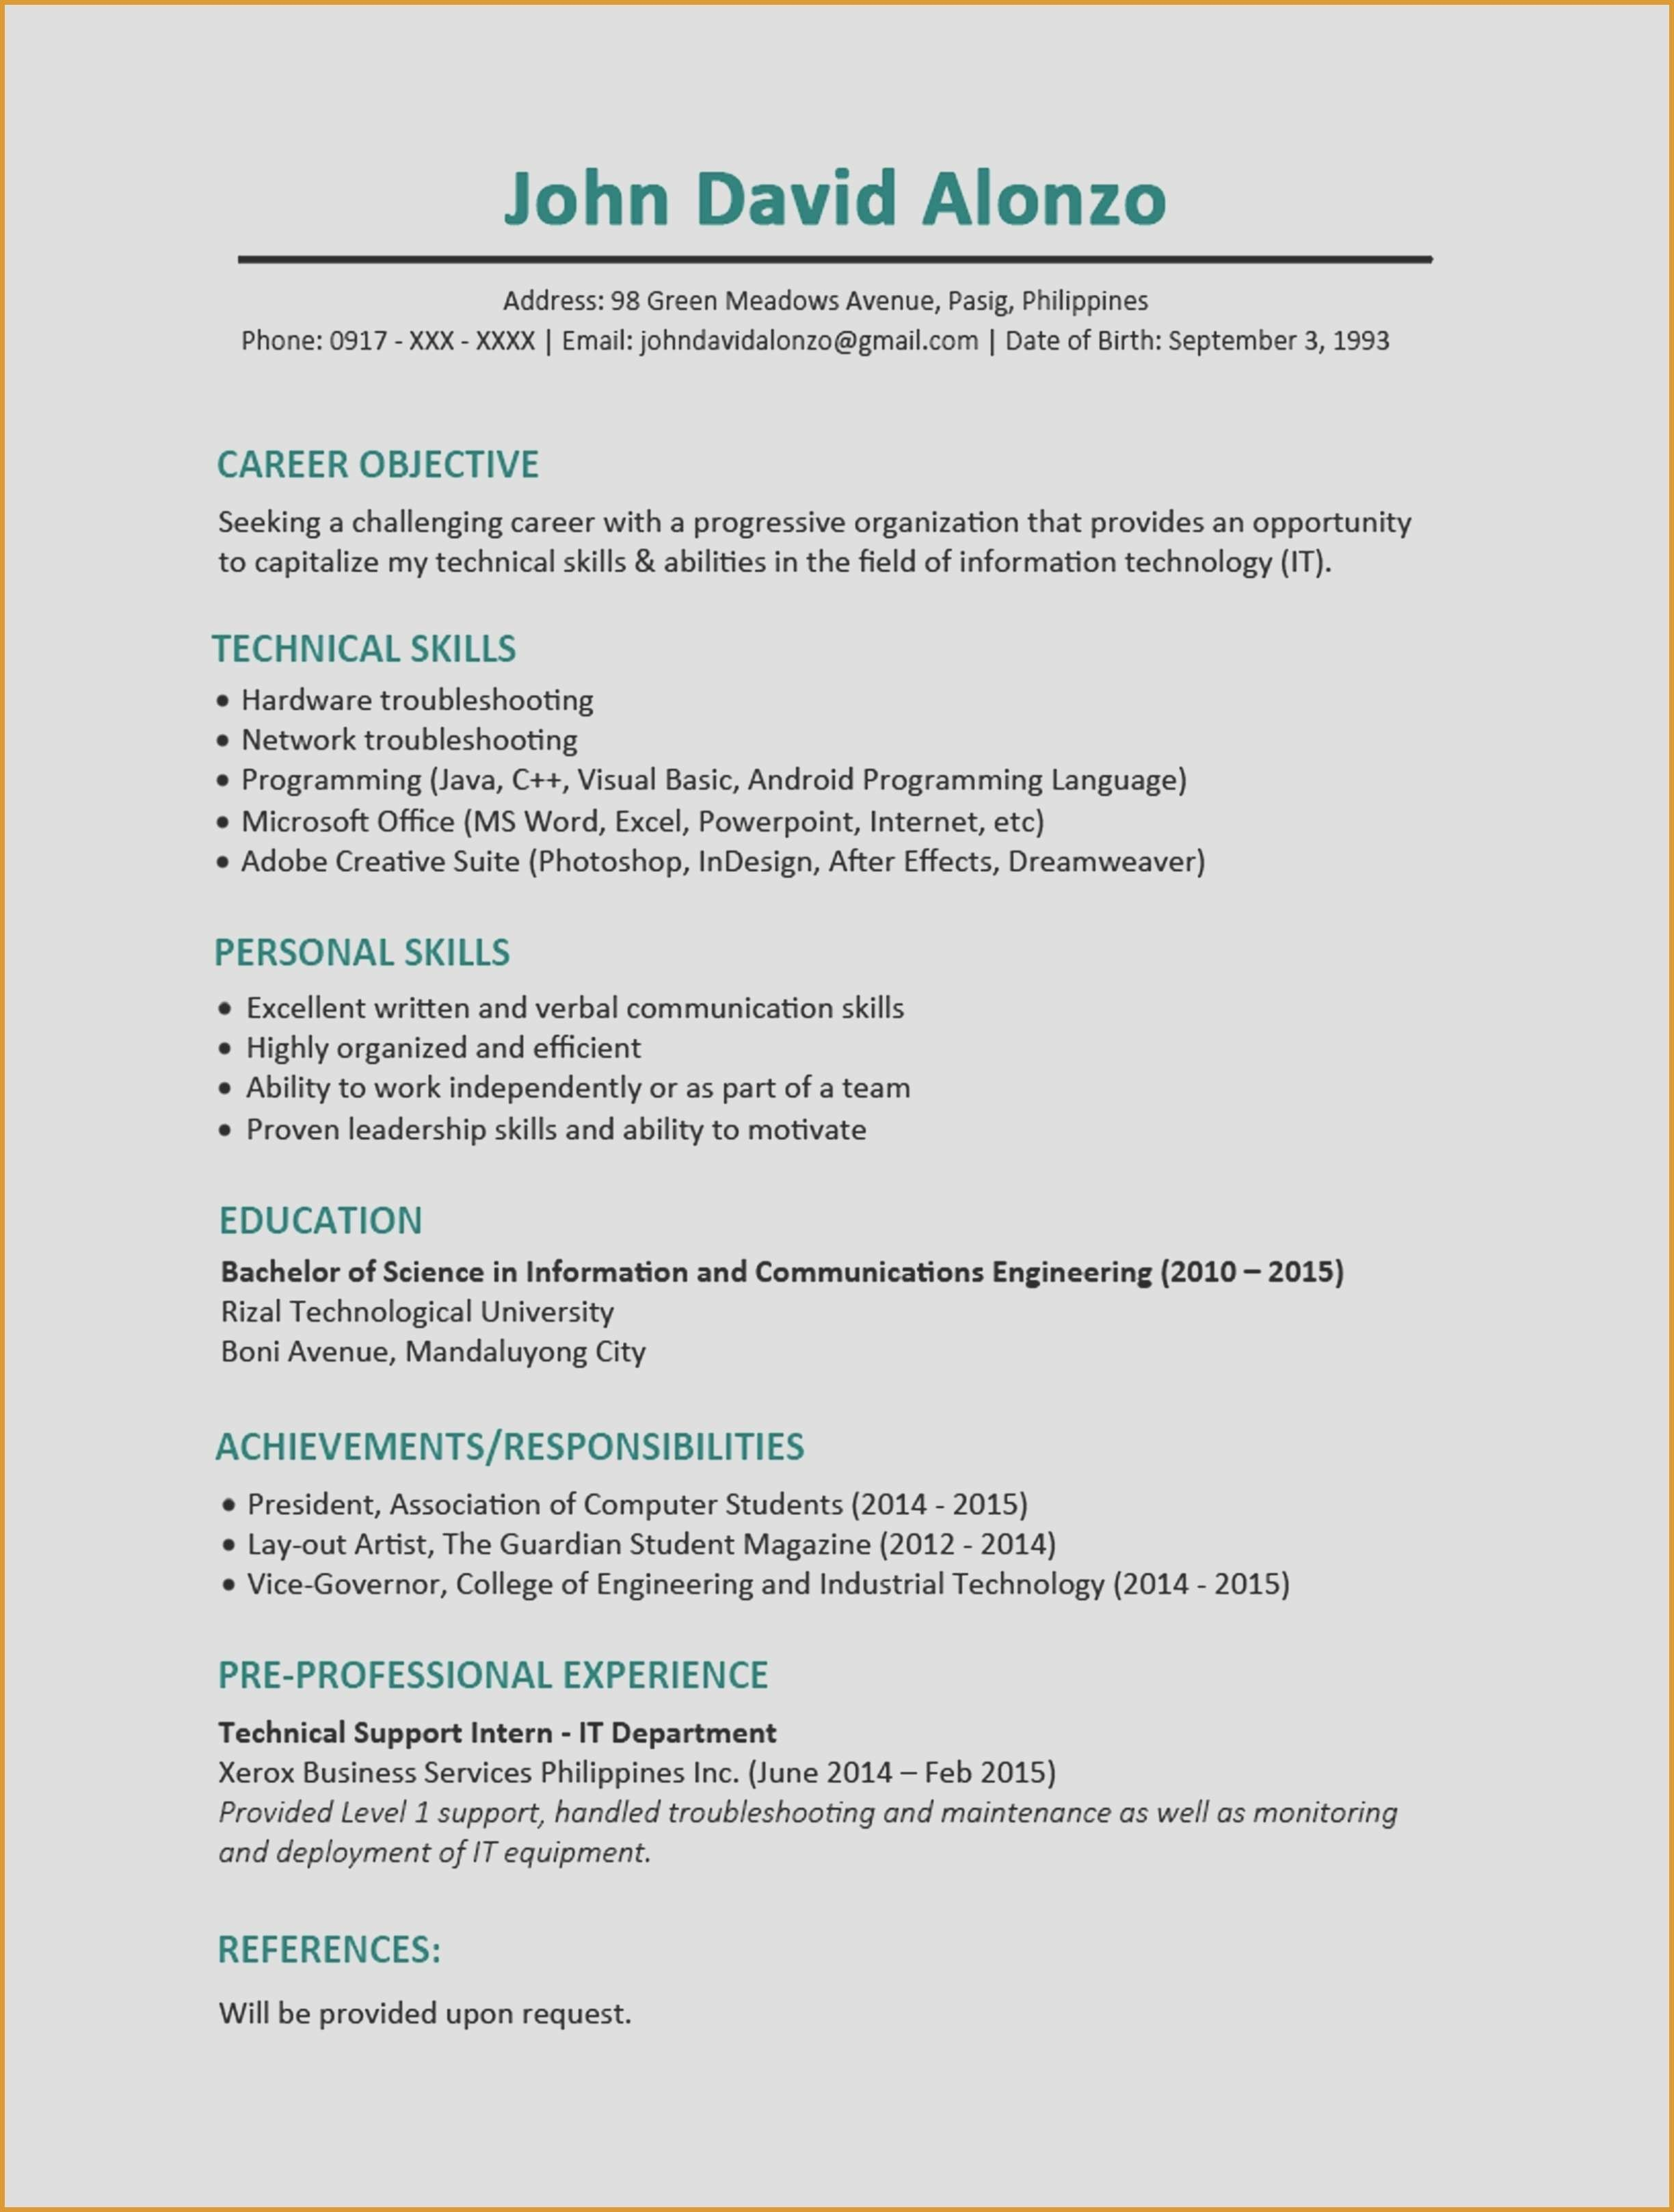 Resume Writers Boston - Resume Writers Boston Best College Resume Example Writers Resume